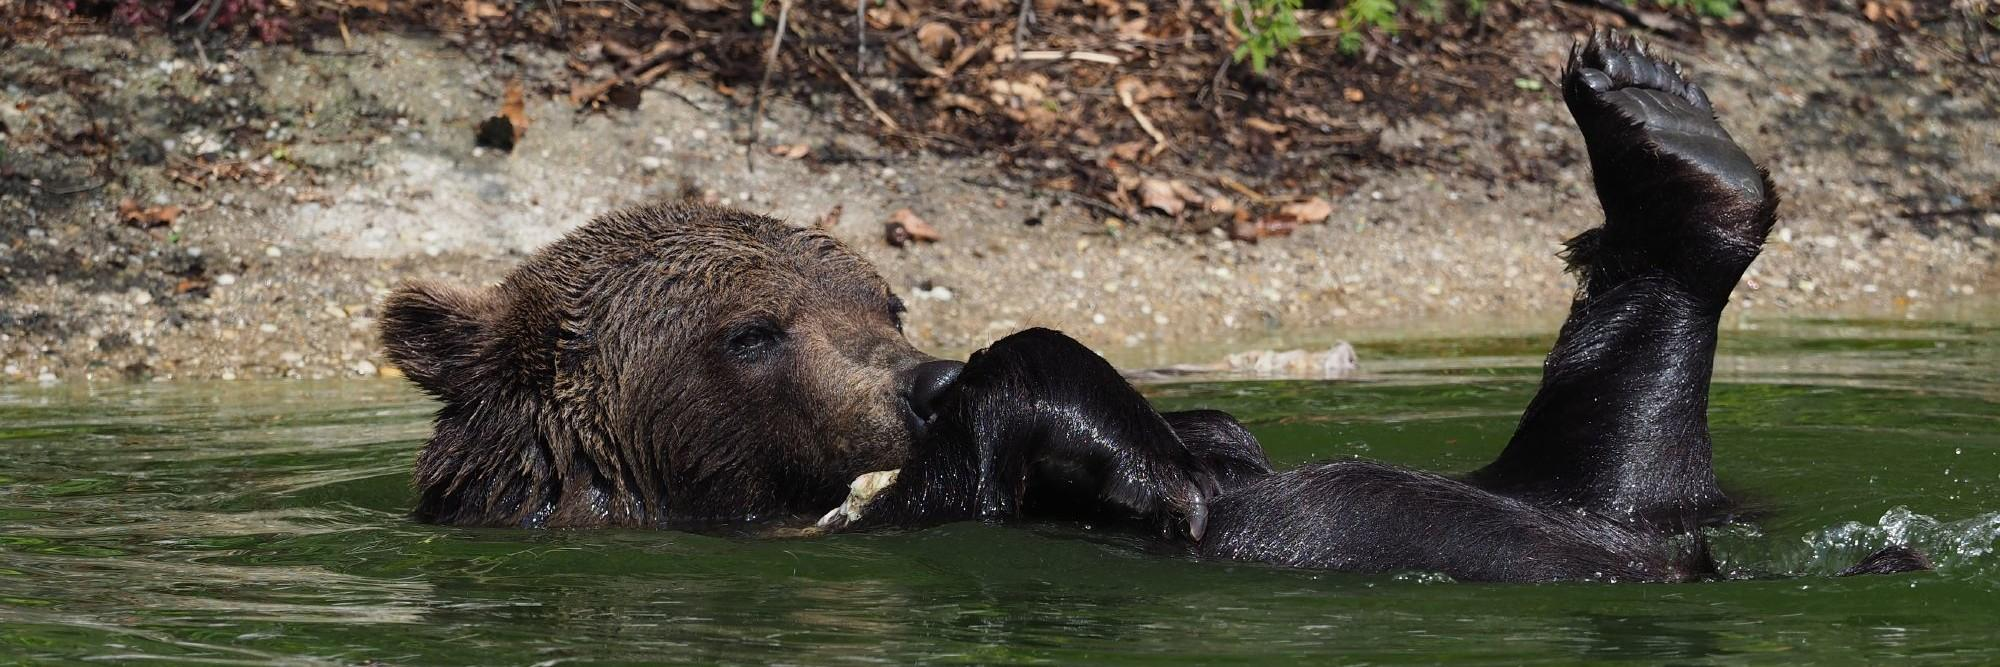 Bears love to swim